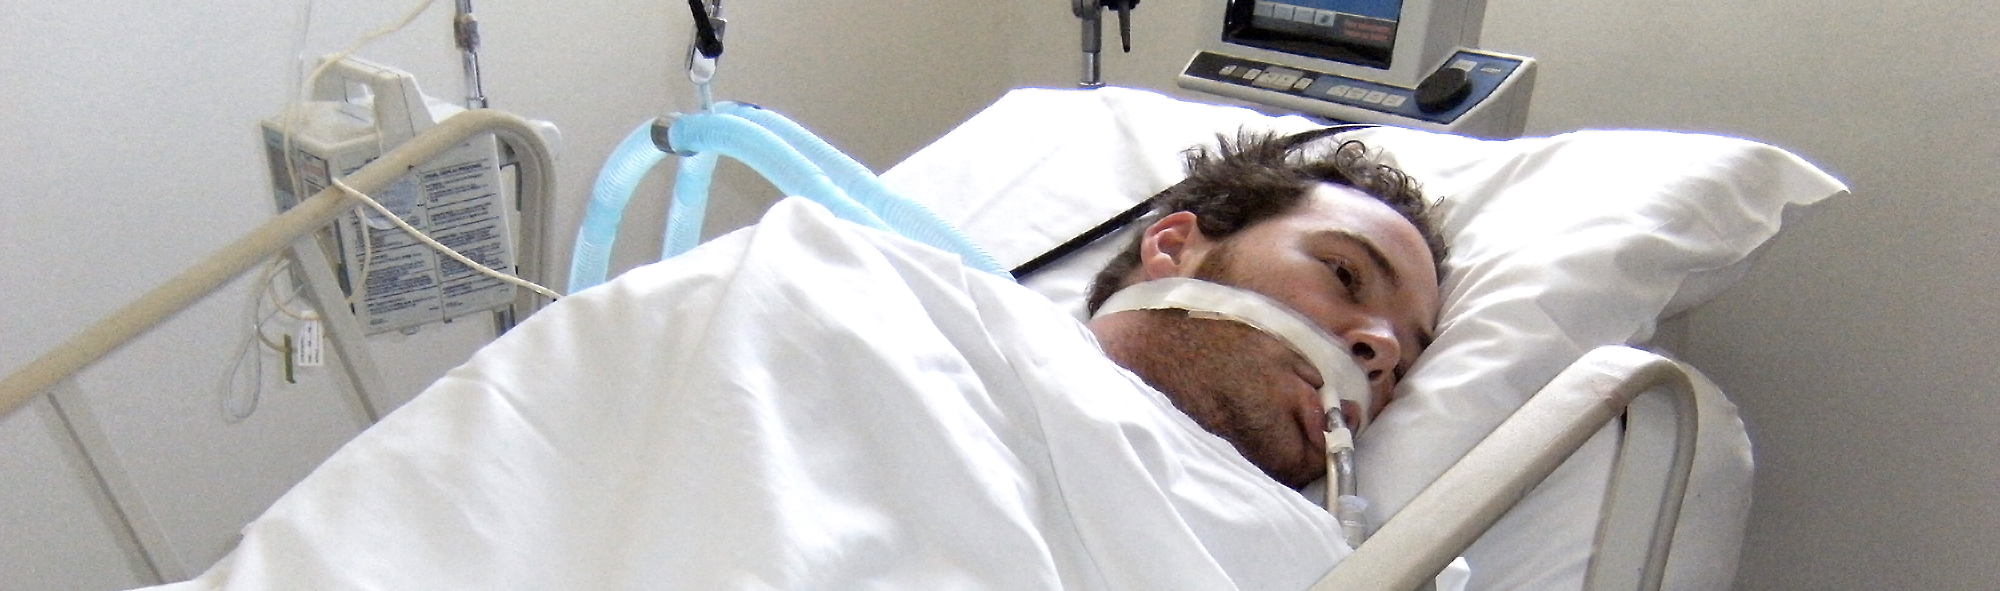 Dan Eley in a hospital bed after his accident in Columbia, three days after his accident